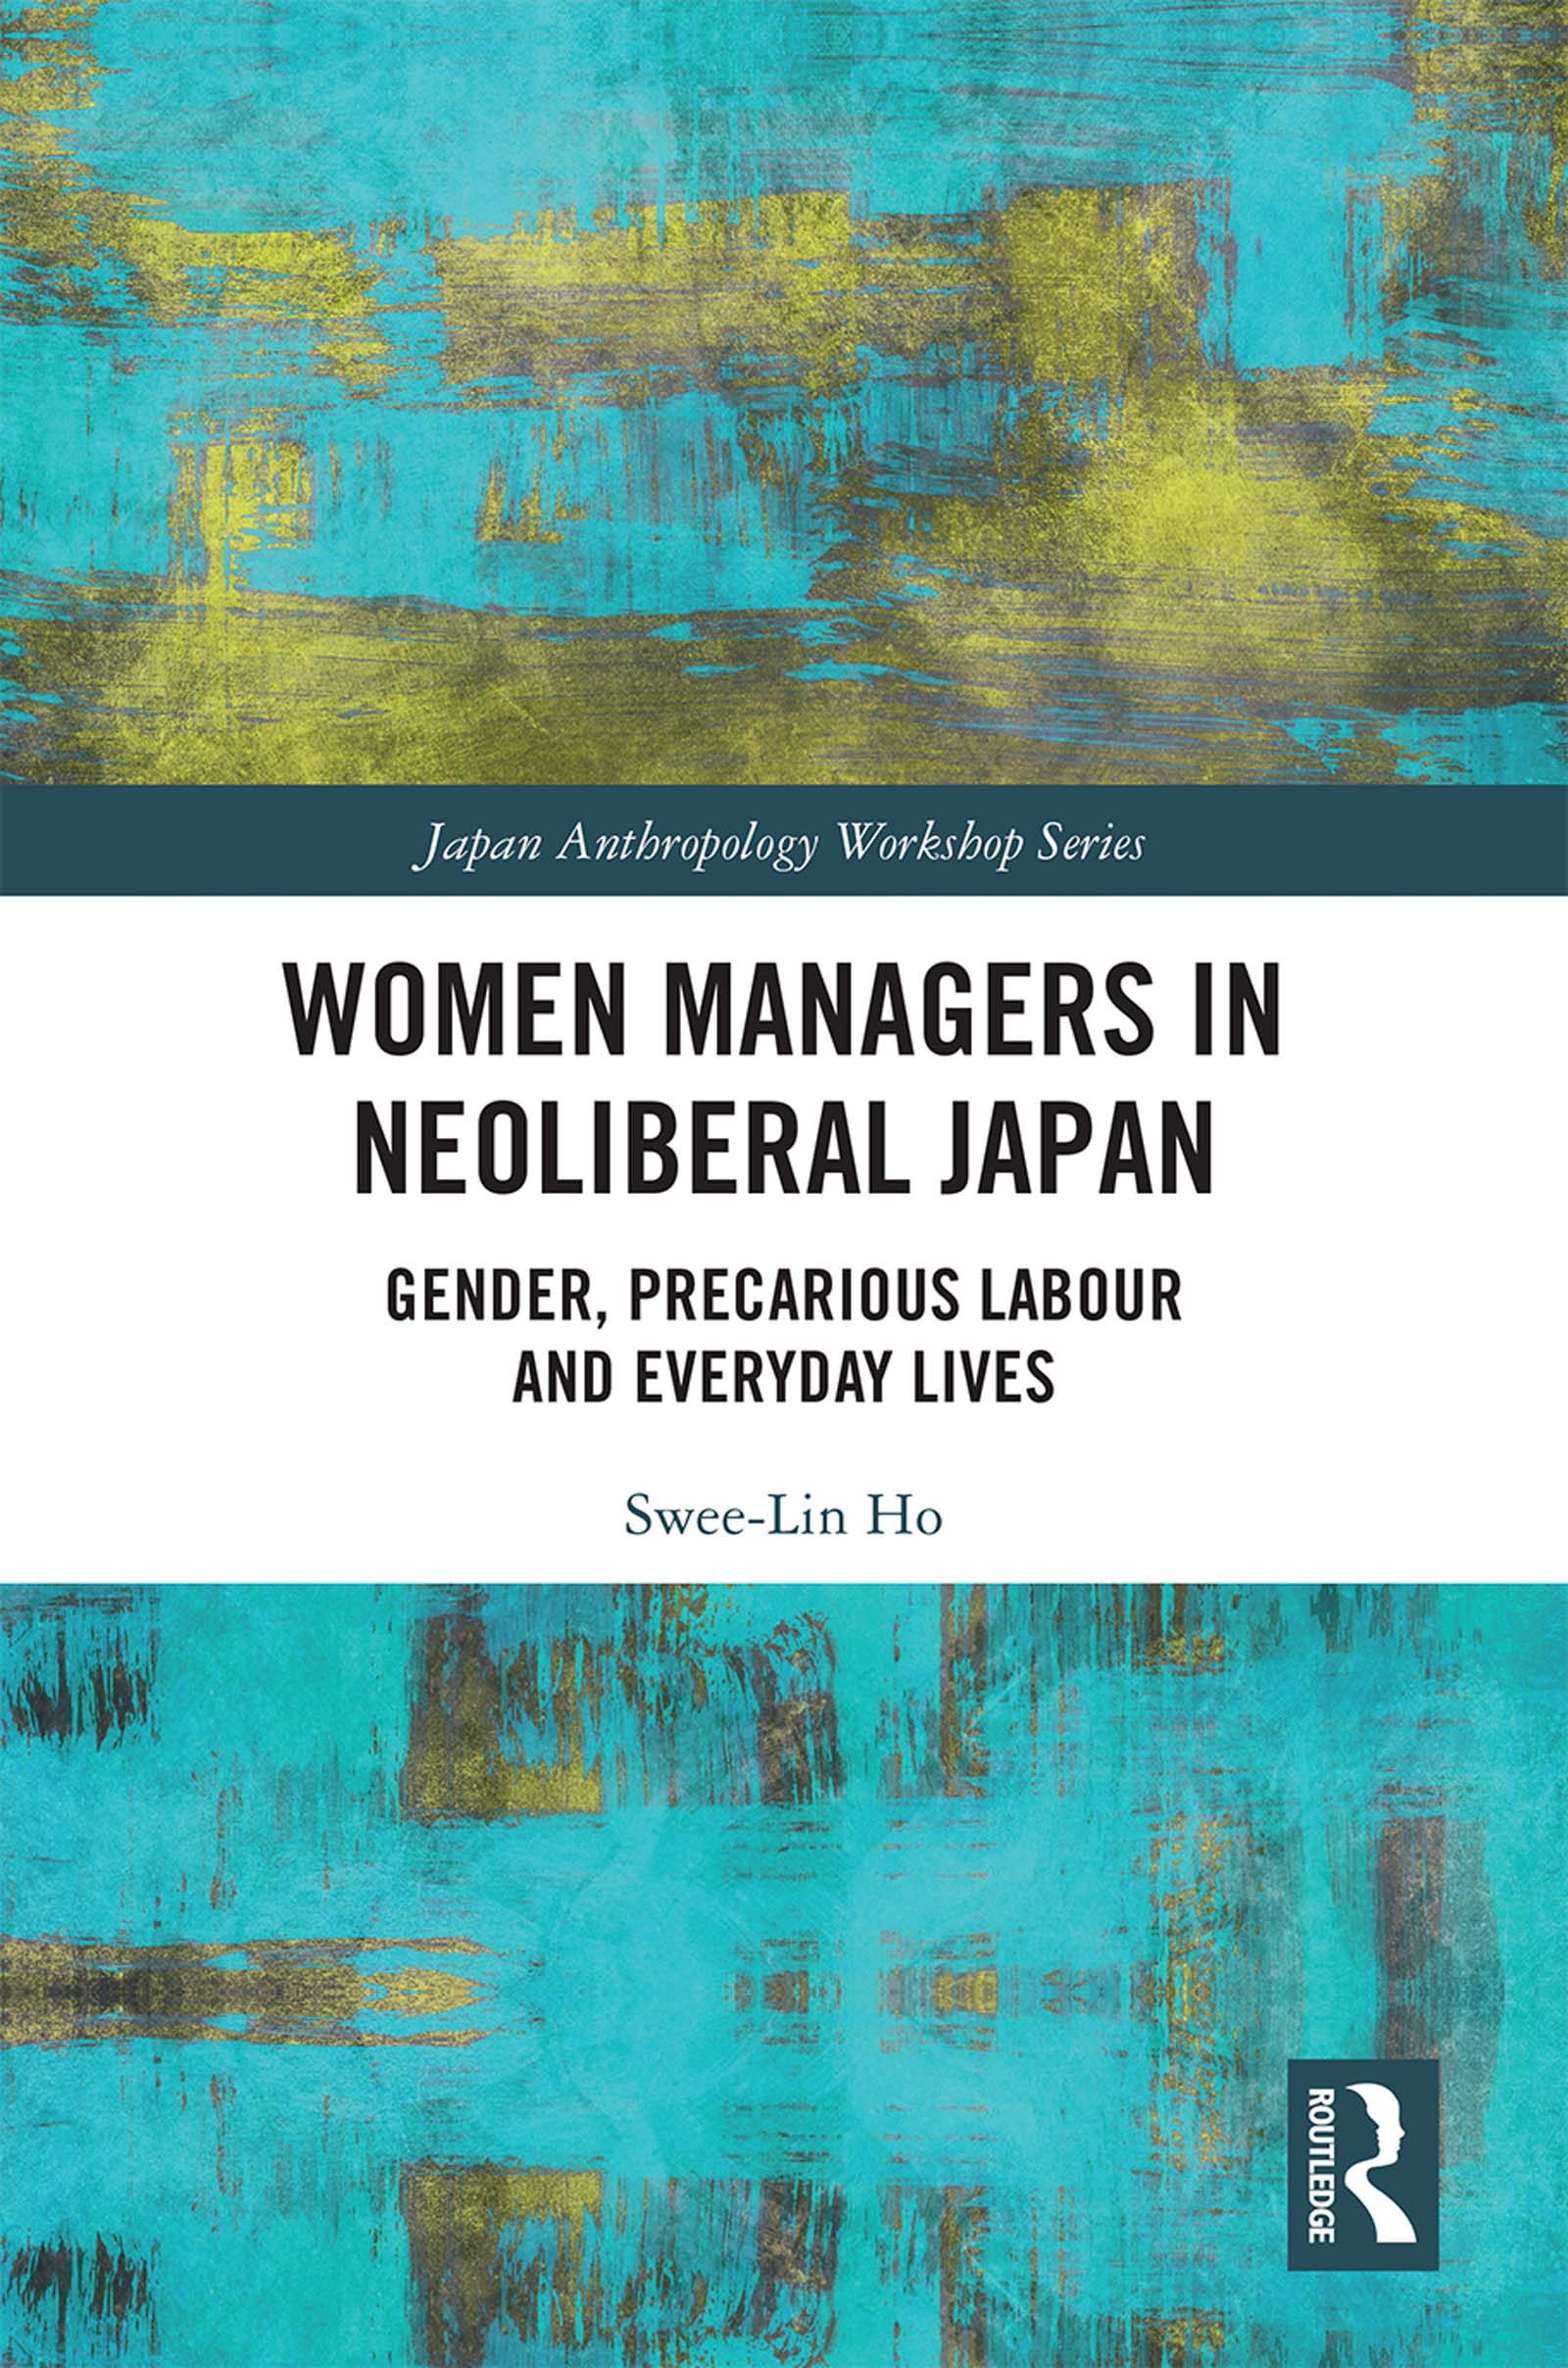 Women Managers in Neoliberal Japan: Gender, Precarious Labour and Everyday Lives book cover